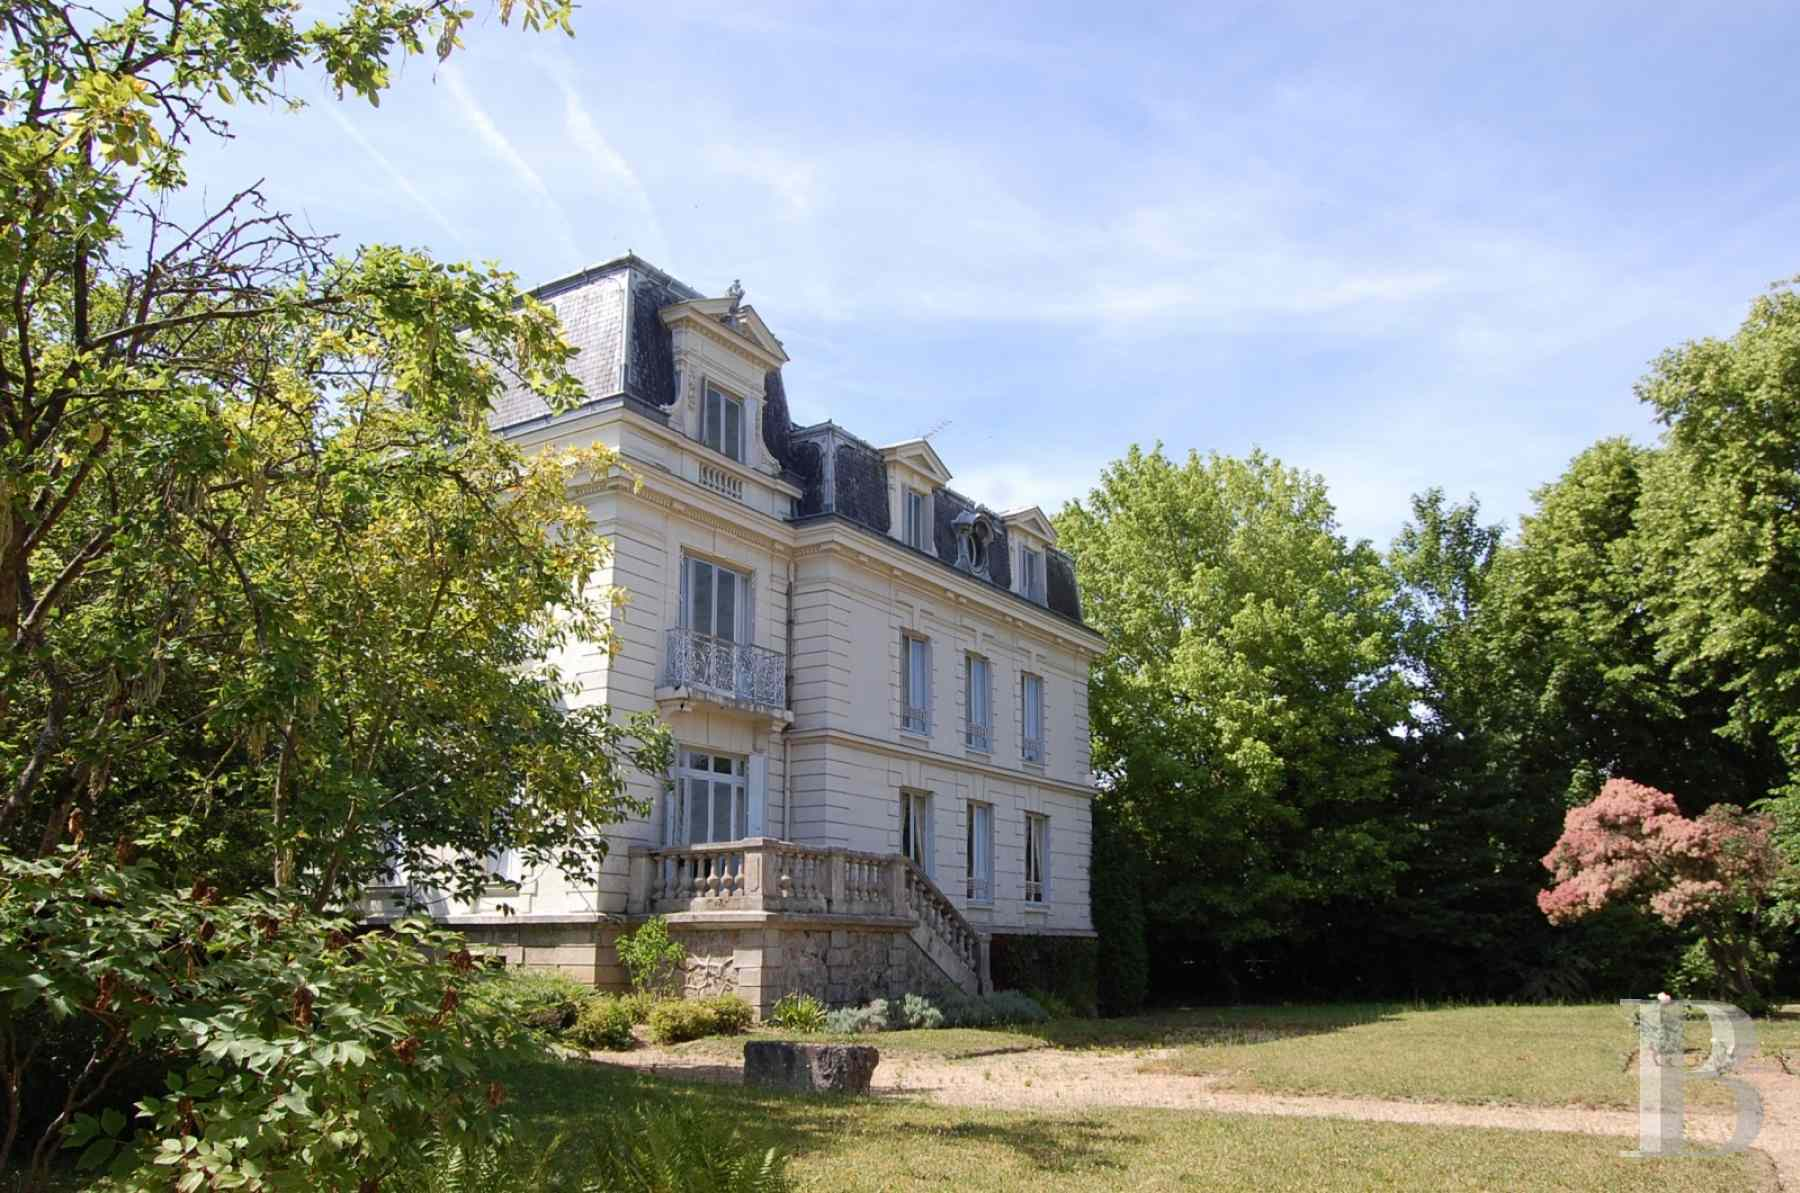 France mansions for sale ile de france marne ferte - 1 zoom